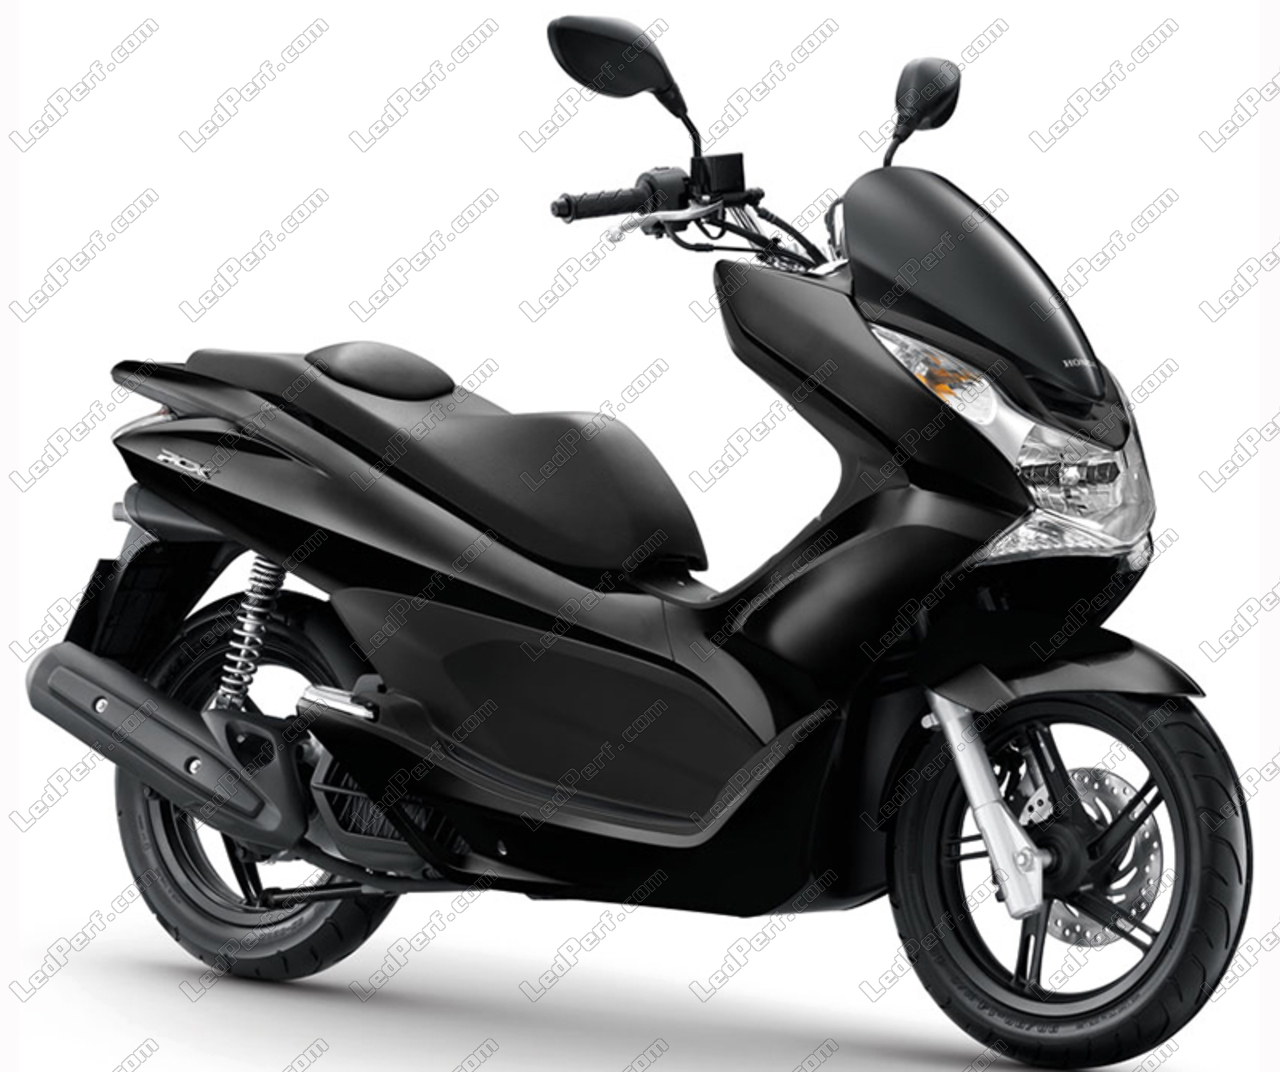 pack front led turn signal for honda pcx 125 150. Black Bedroom Furniture Sets. Home Design Ideas